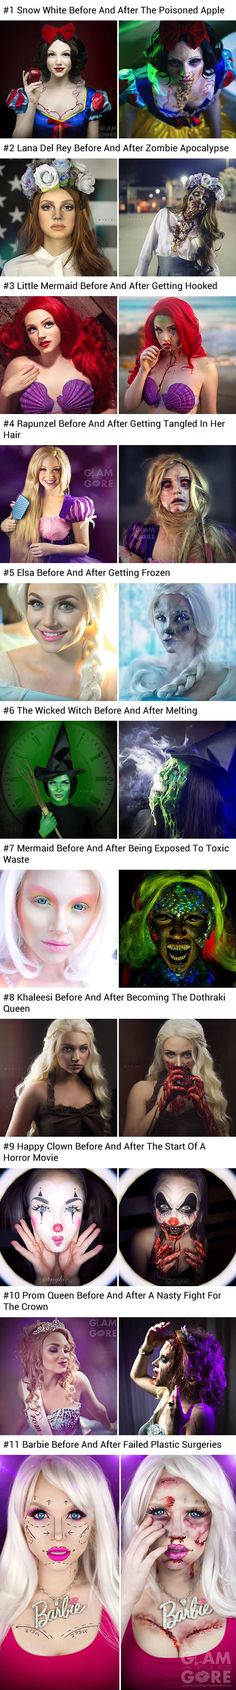 Makeup Artist Shows The Horrifying Fate Of Disney Princesses And Pop Icons